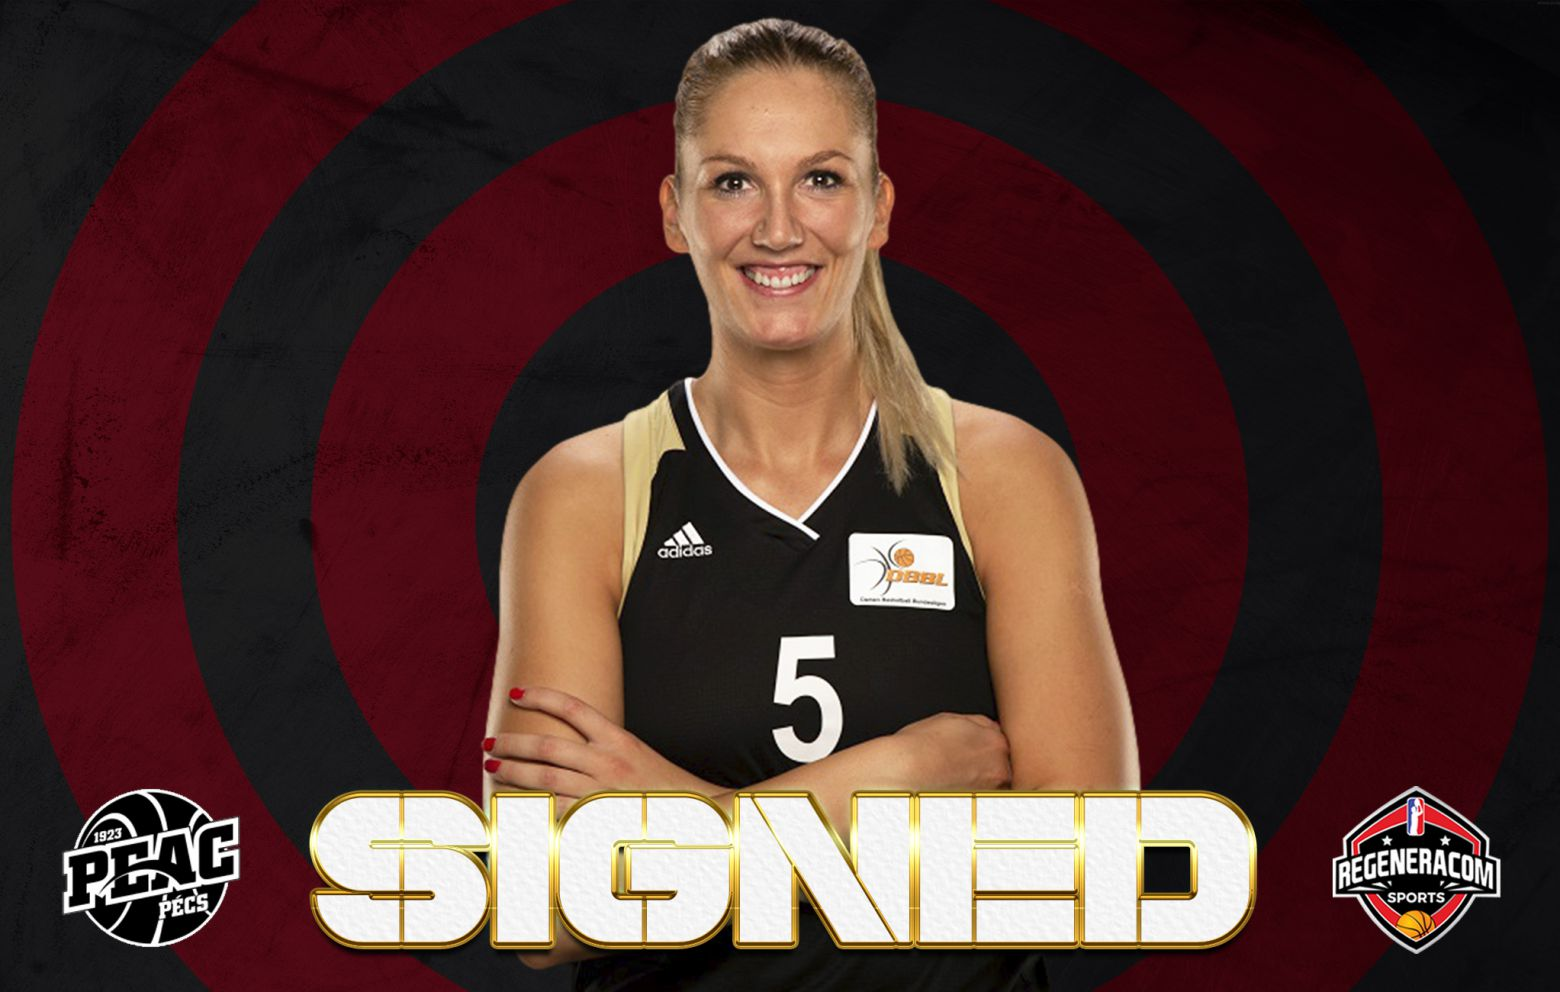 IVANA BRAJKOVIC has signed in Hungary with PEAC Pecs for the 2021/22 season